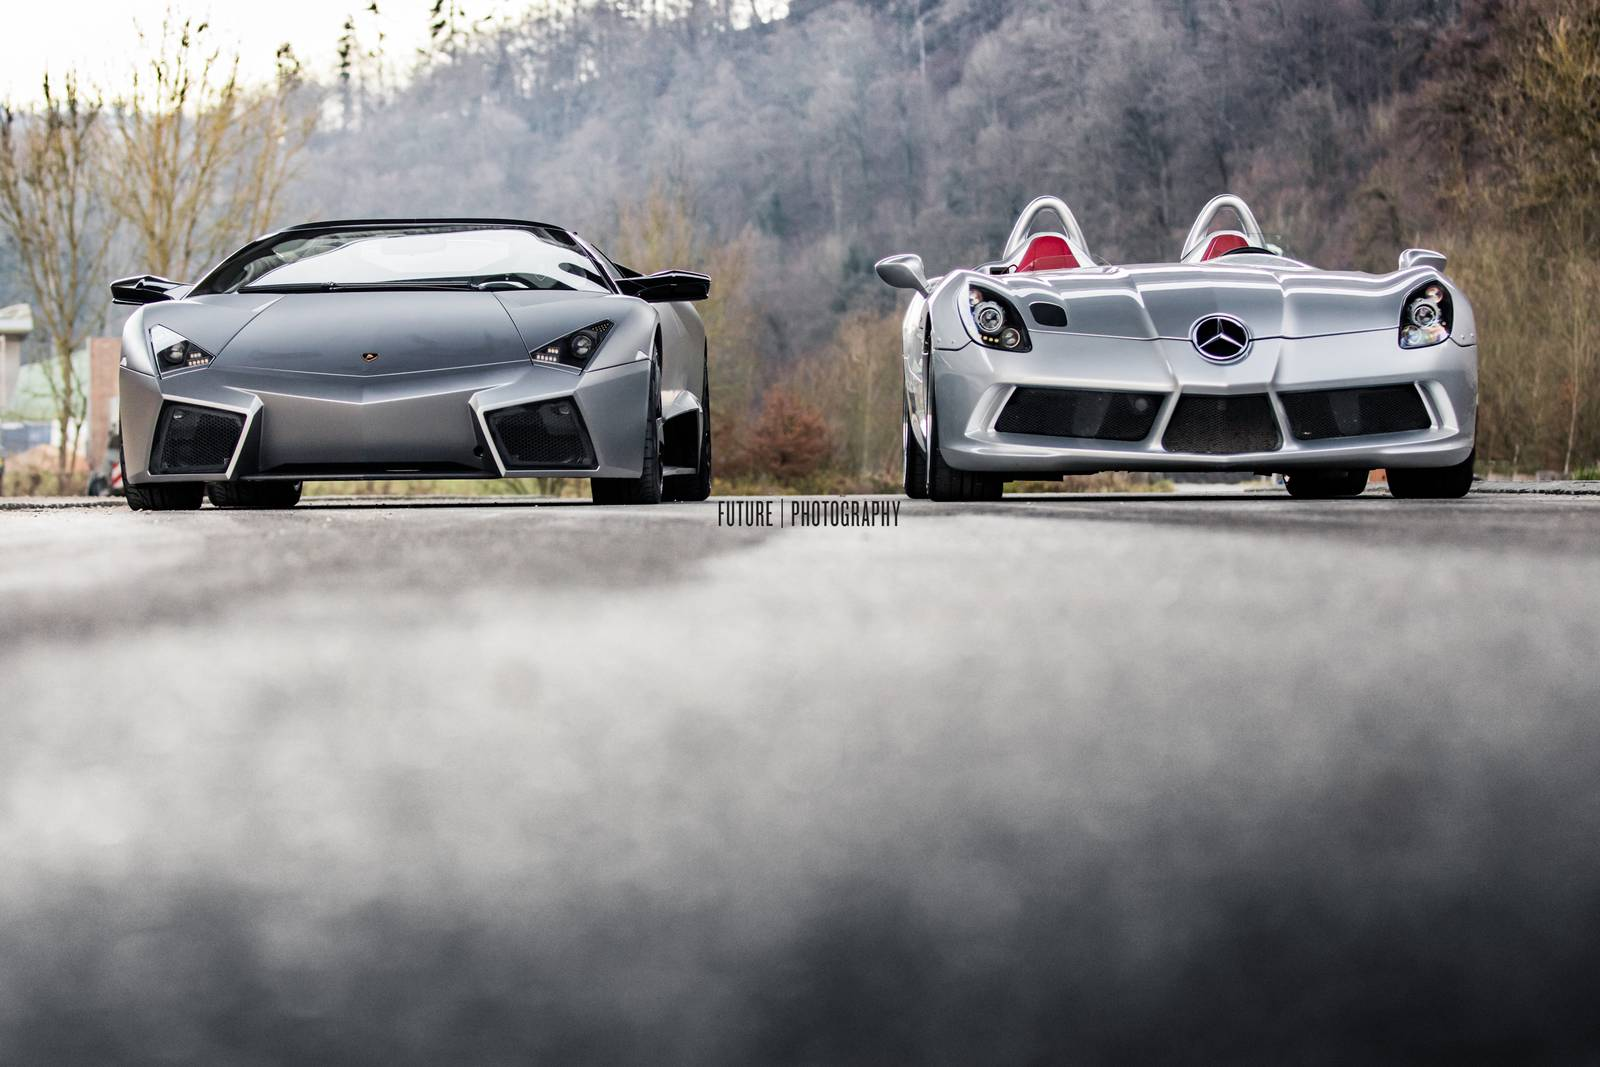 lamborghini reventon roadster and slr stirling moss photo shoot. Black Bedroom Furniture Sets. Home Design Ideas